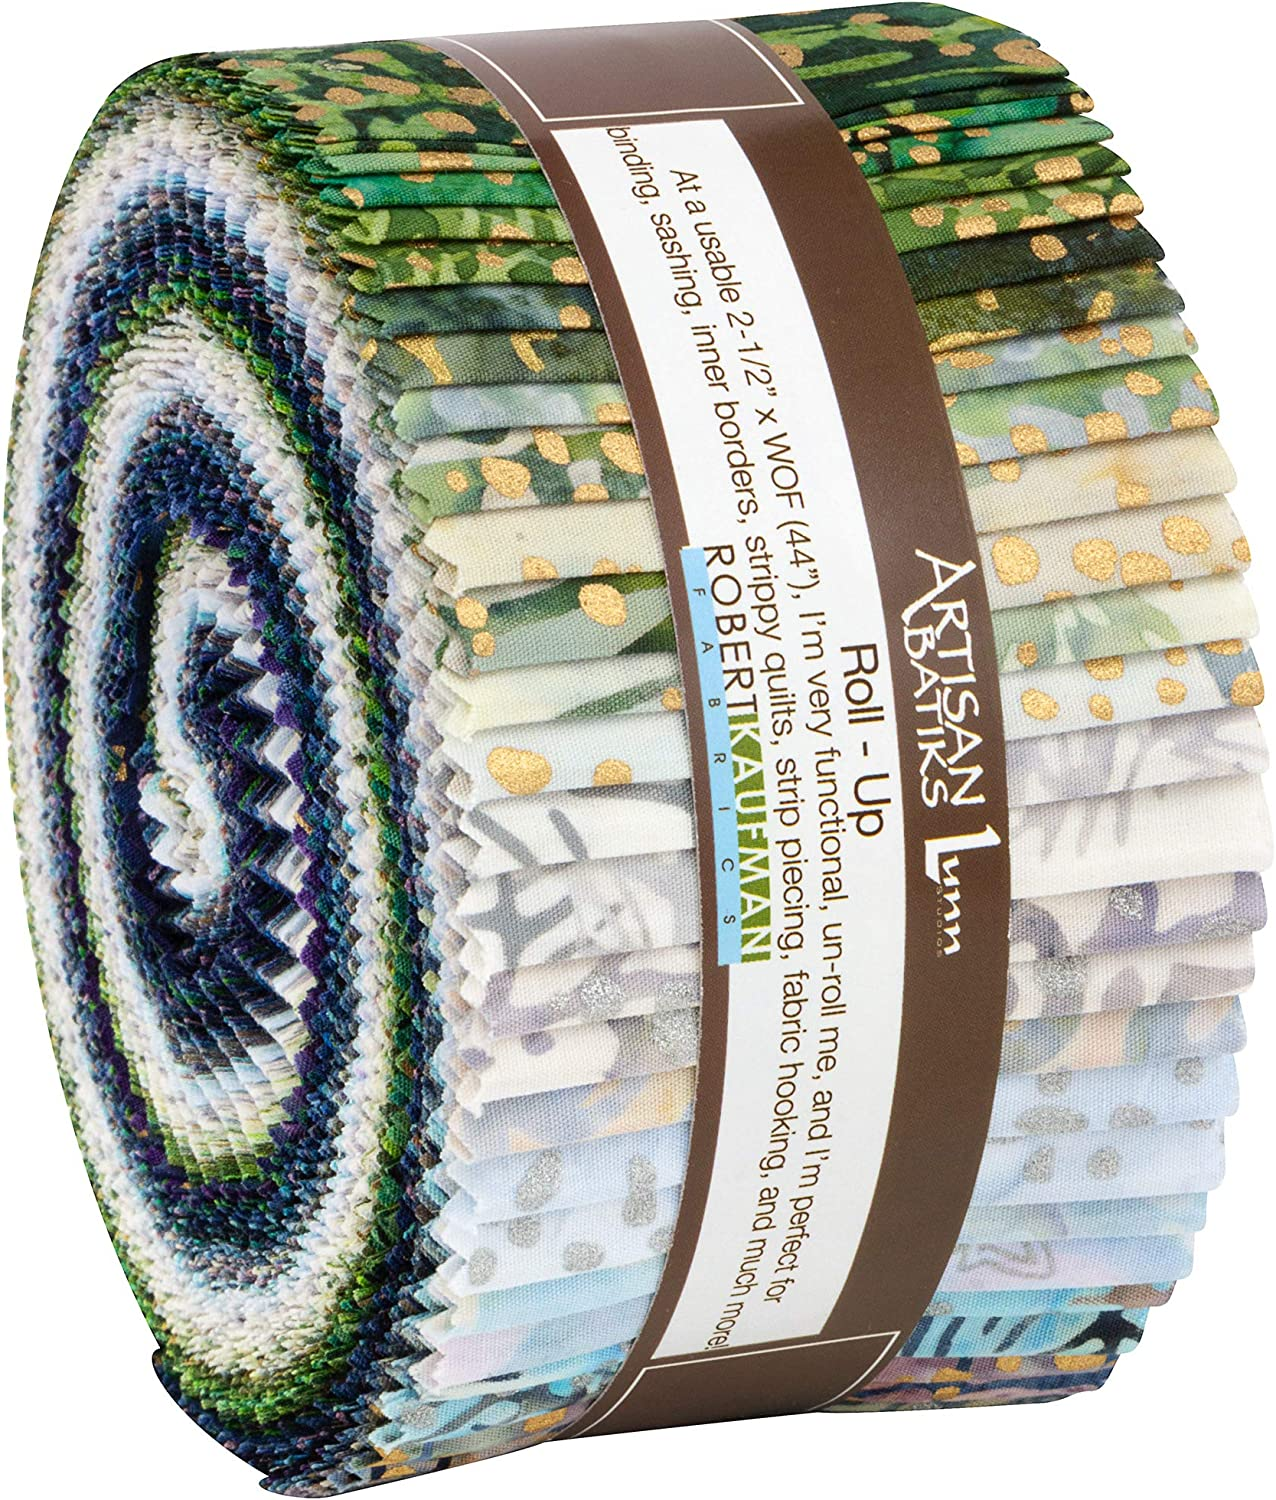 "Lunn Studios Artisan Batiks Twilight Snowfall Roll Up 40 2.5"" Strips Jelly Roll Kaufman RU-914-40"